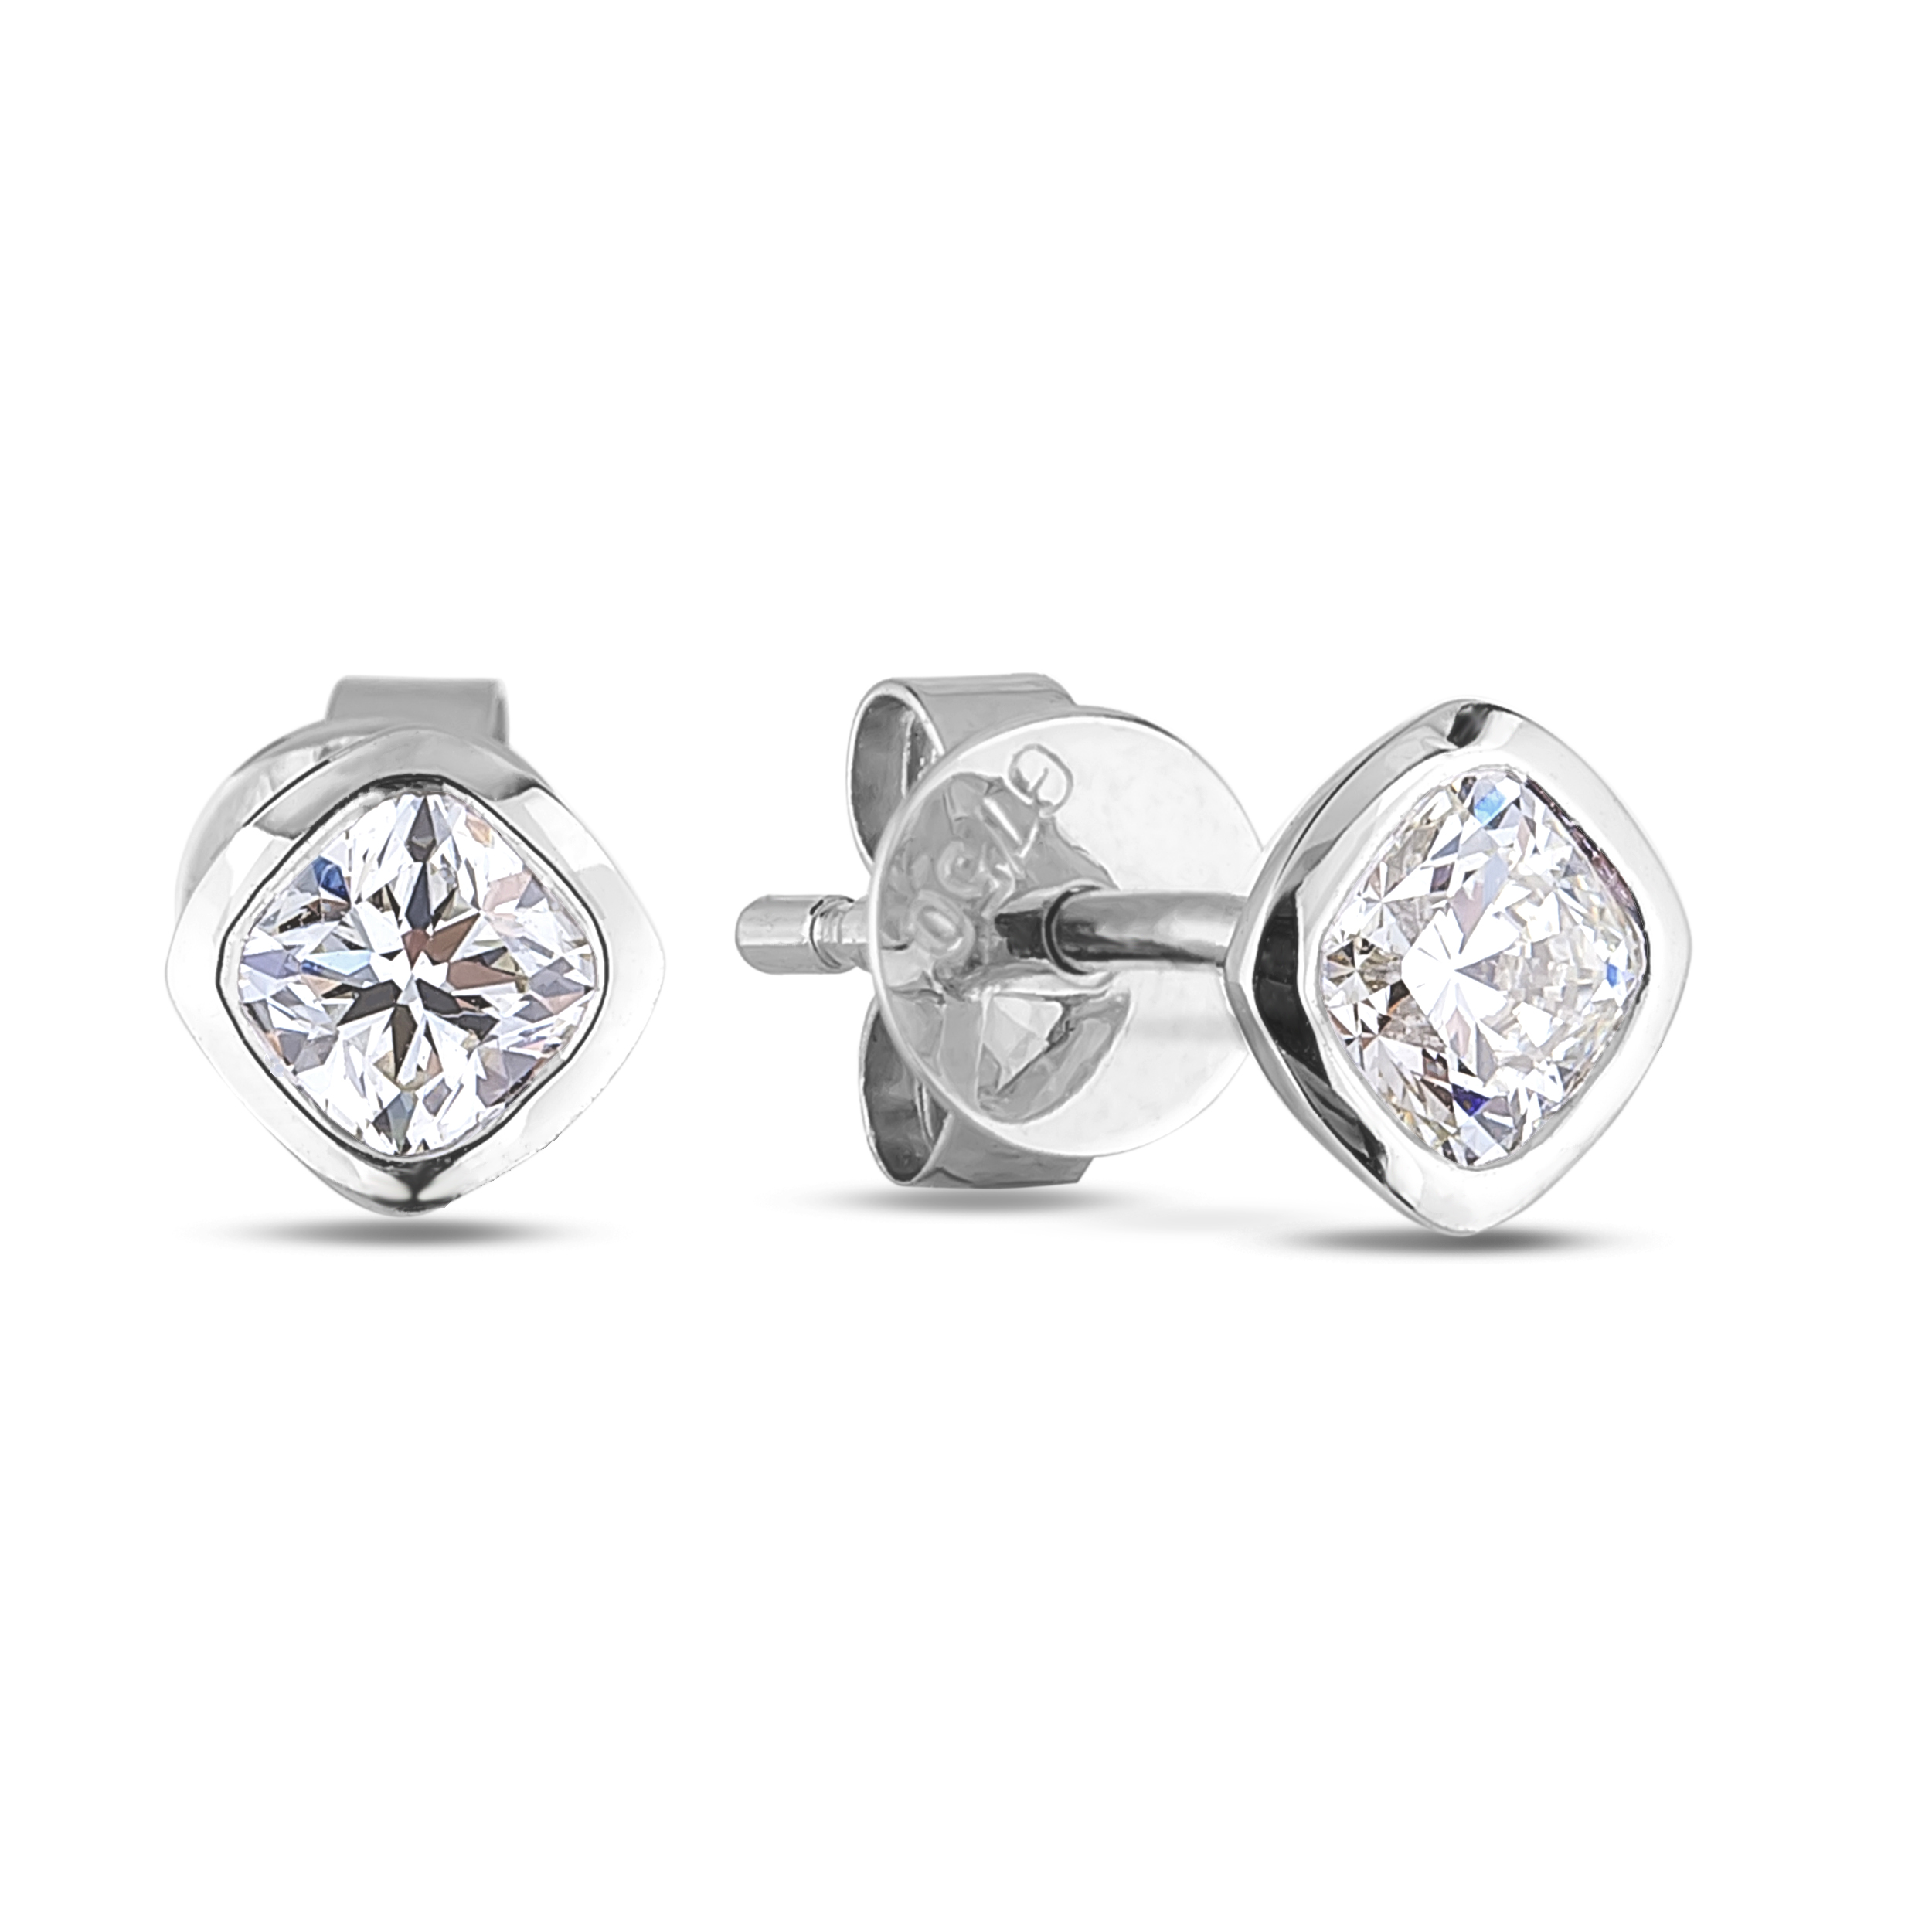 Diamond Stud Earrings SGE328 (Earrings)